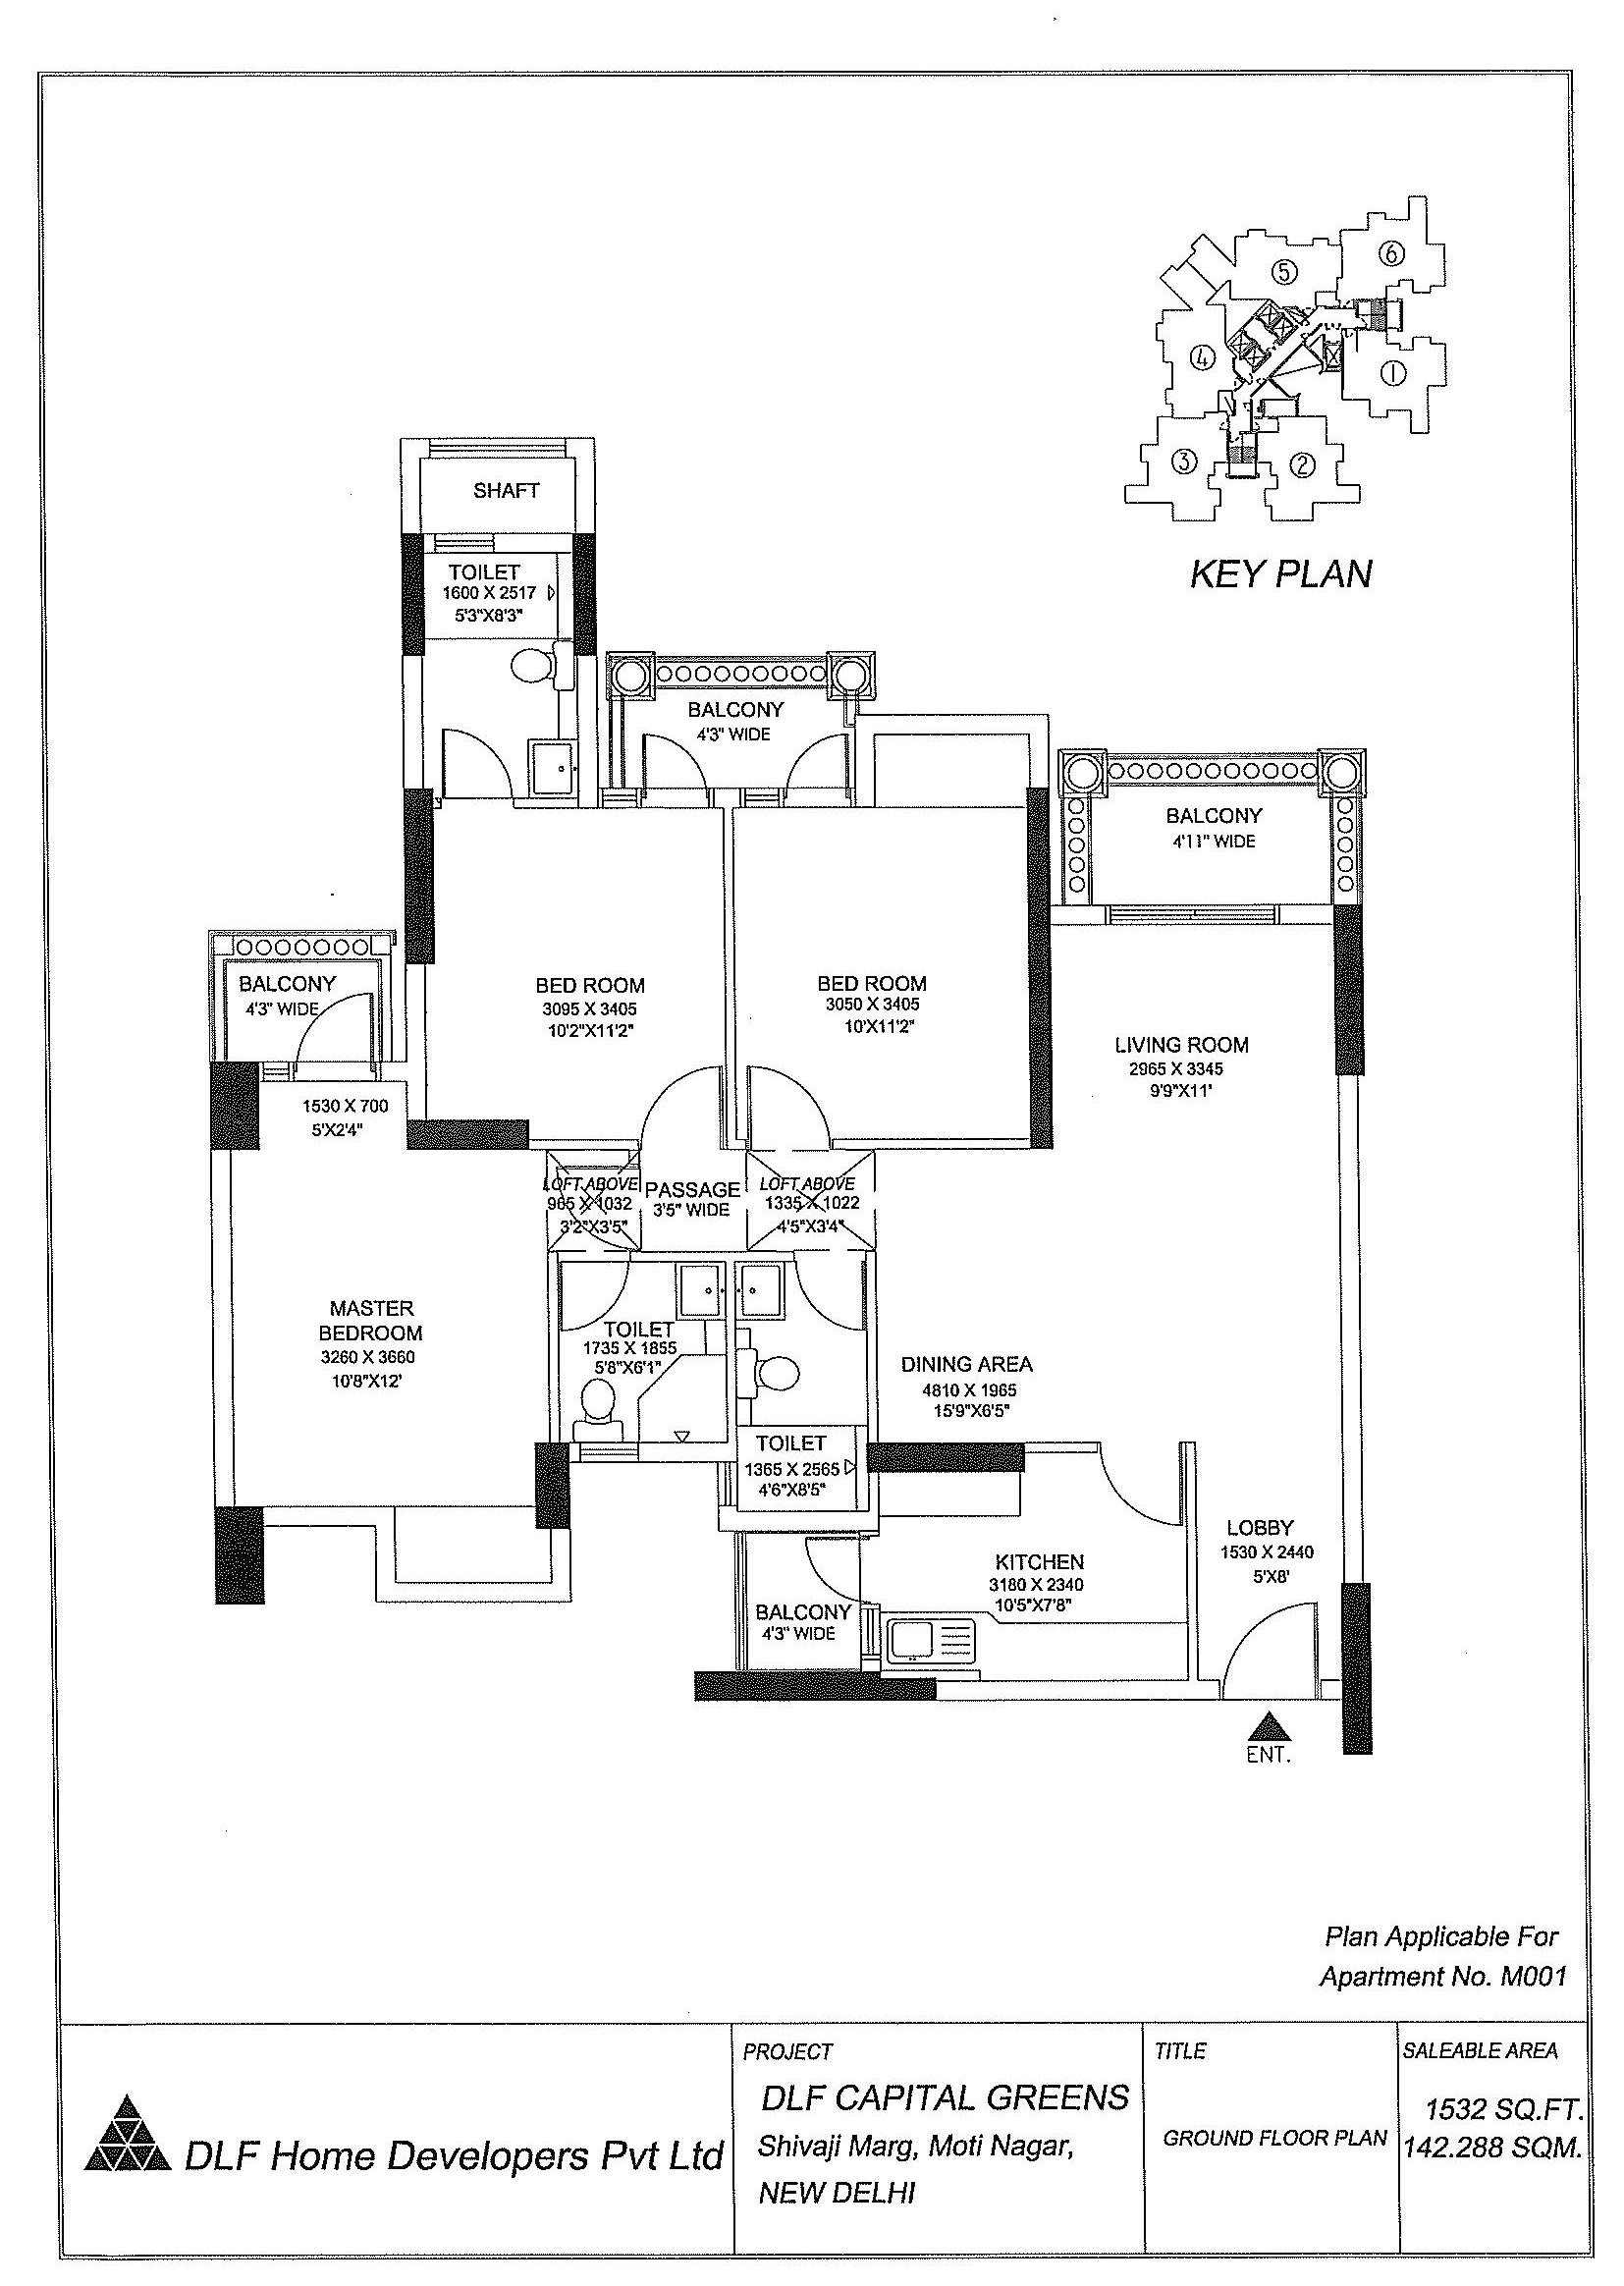 Area - 1532 Sq. Ft.